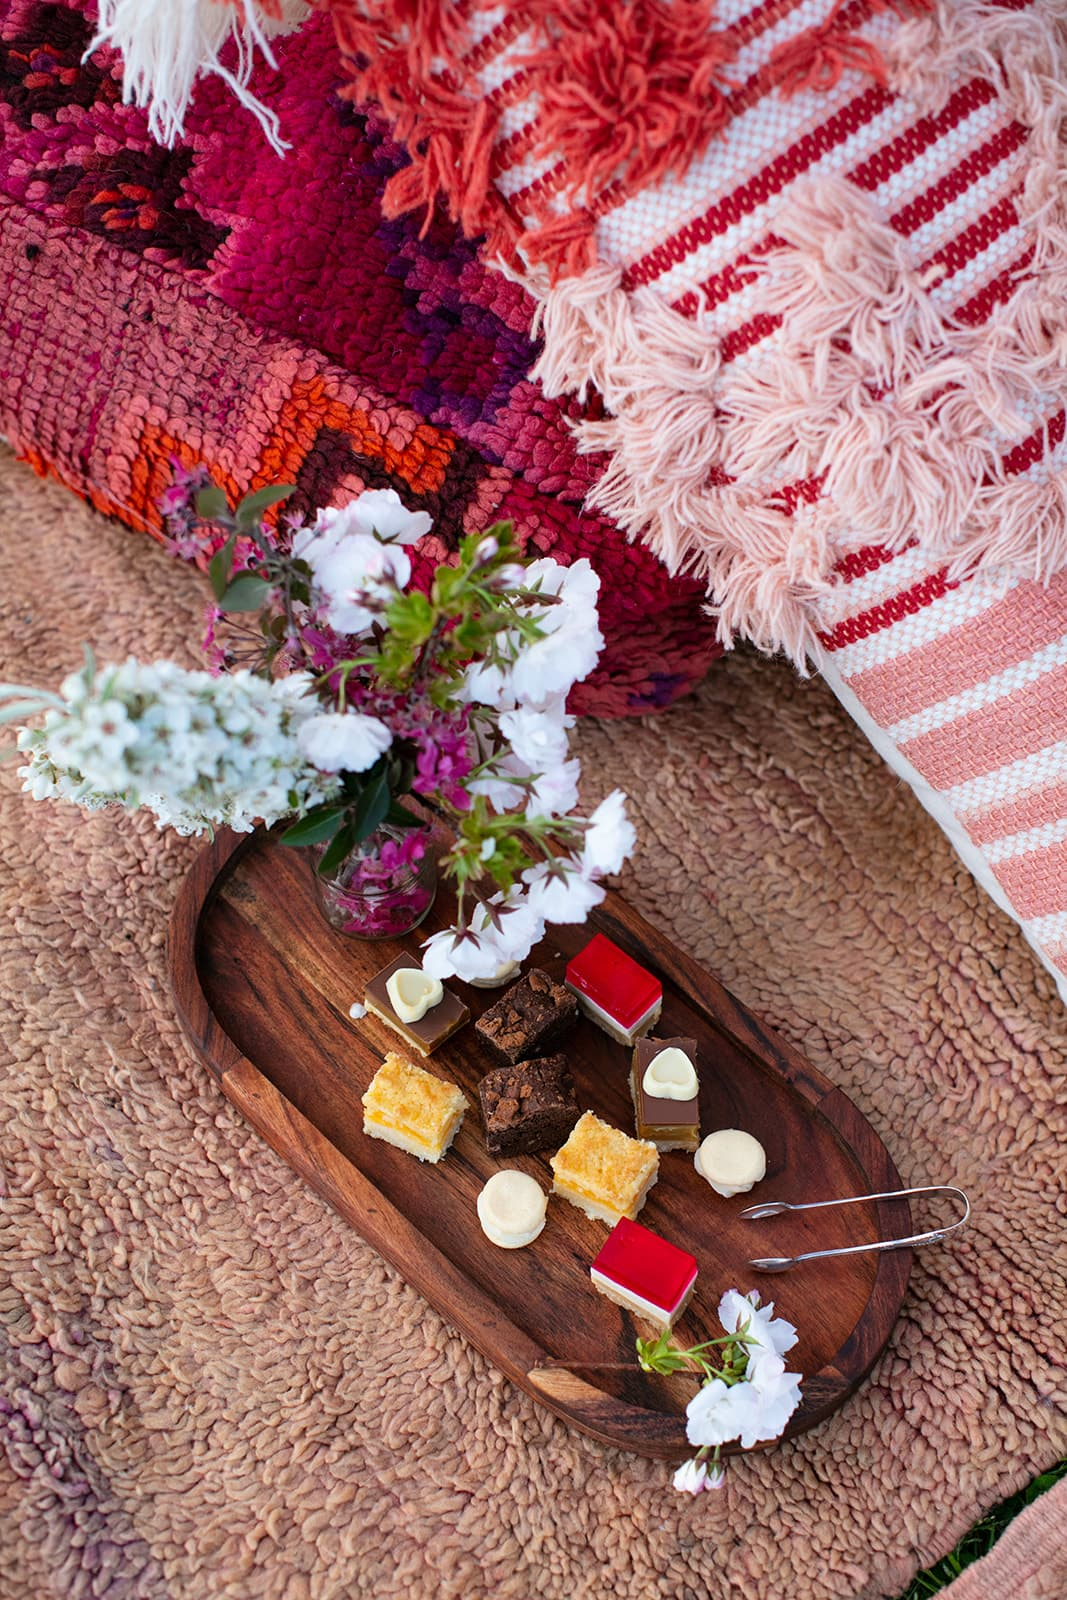 picnic rug with tray of sweets